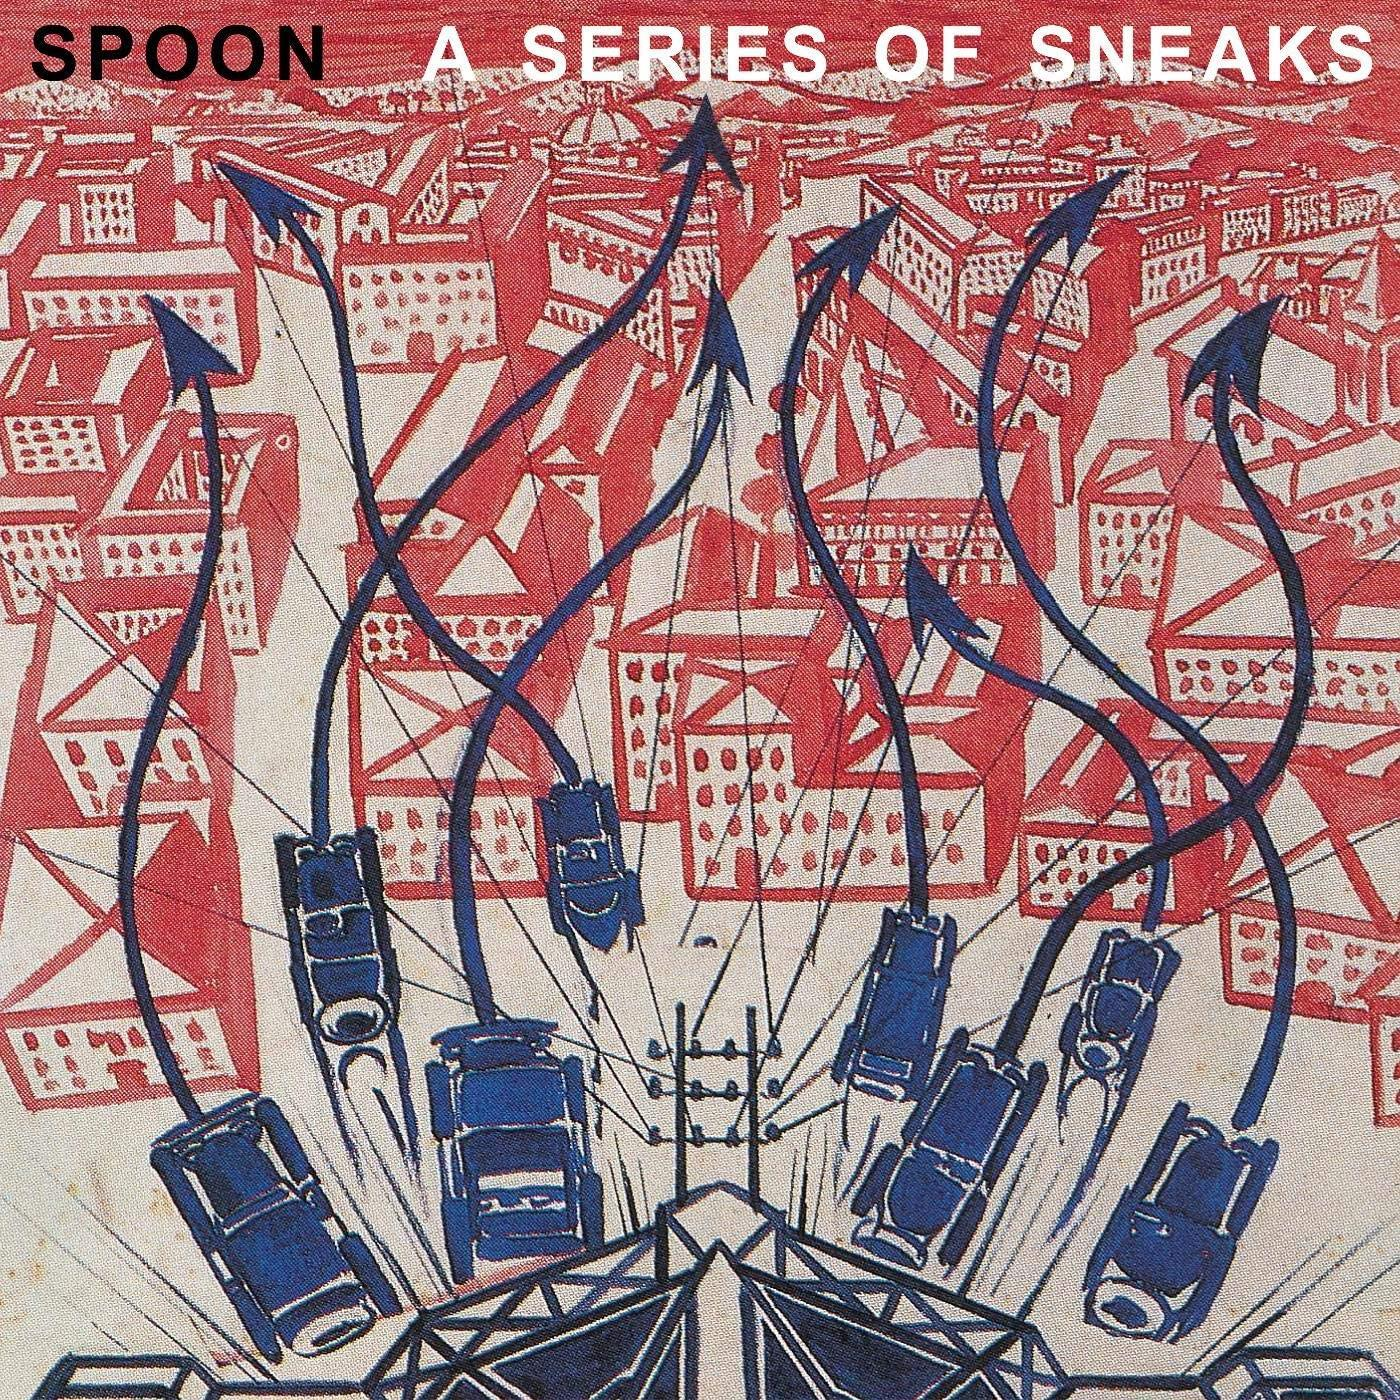 Spoon - A Series of Sneaks [LP]